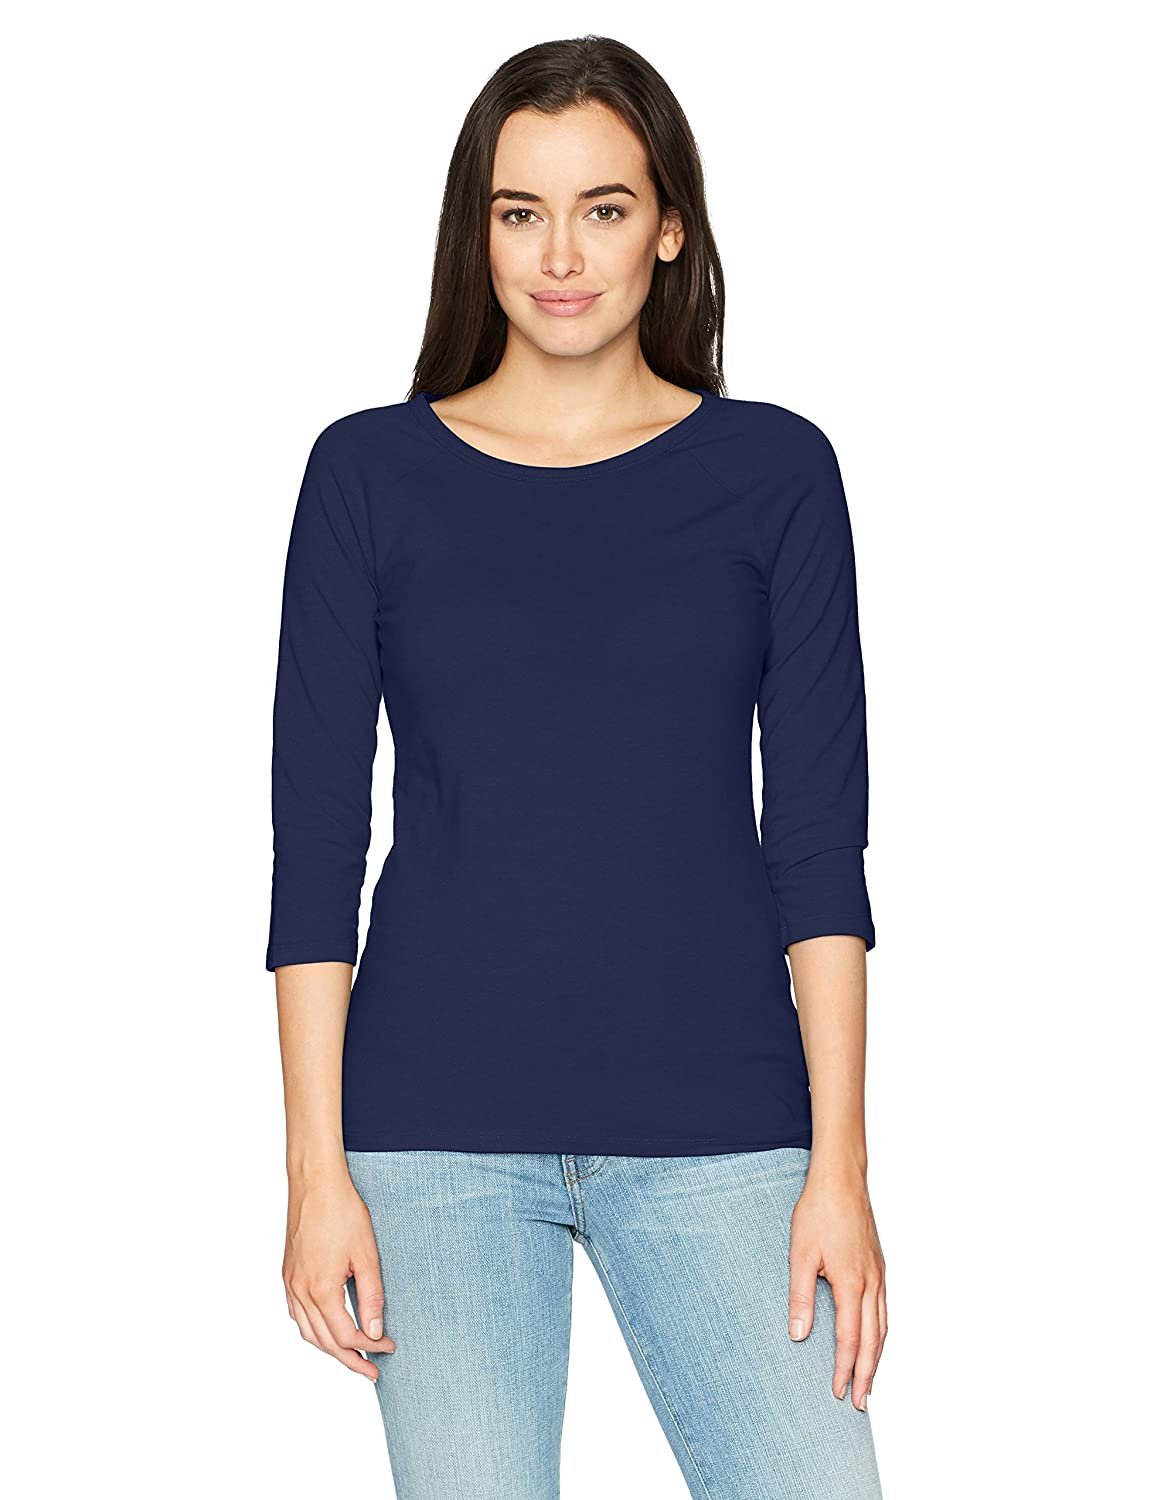 Hanes Women's Stretch Cotton Raglan Sleeve Tee, Hanes Women's Activewear O9343